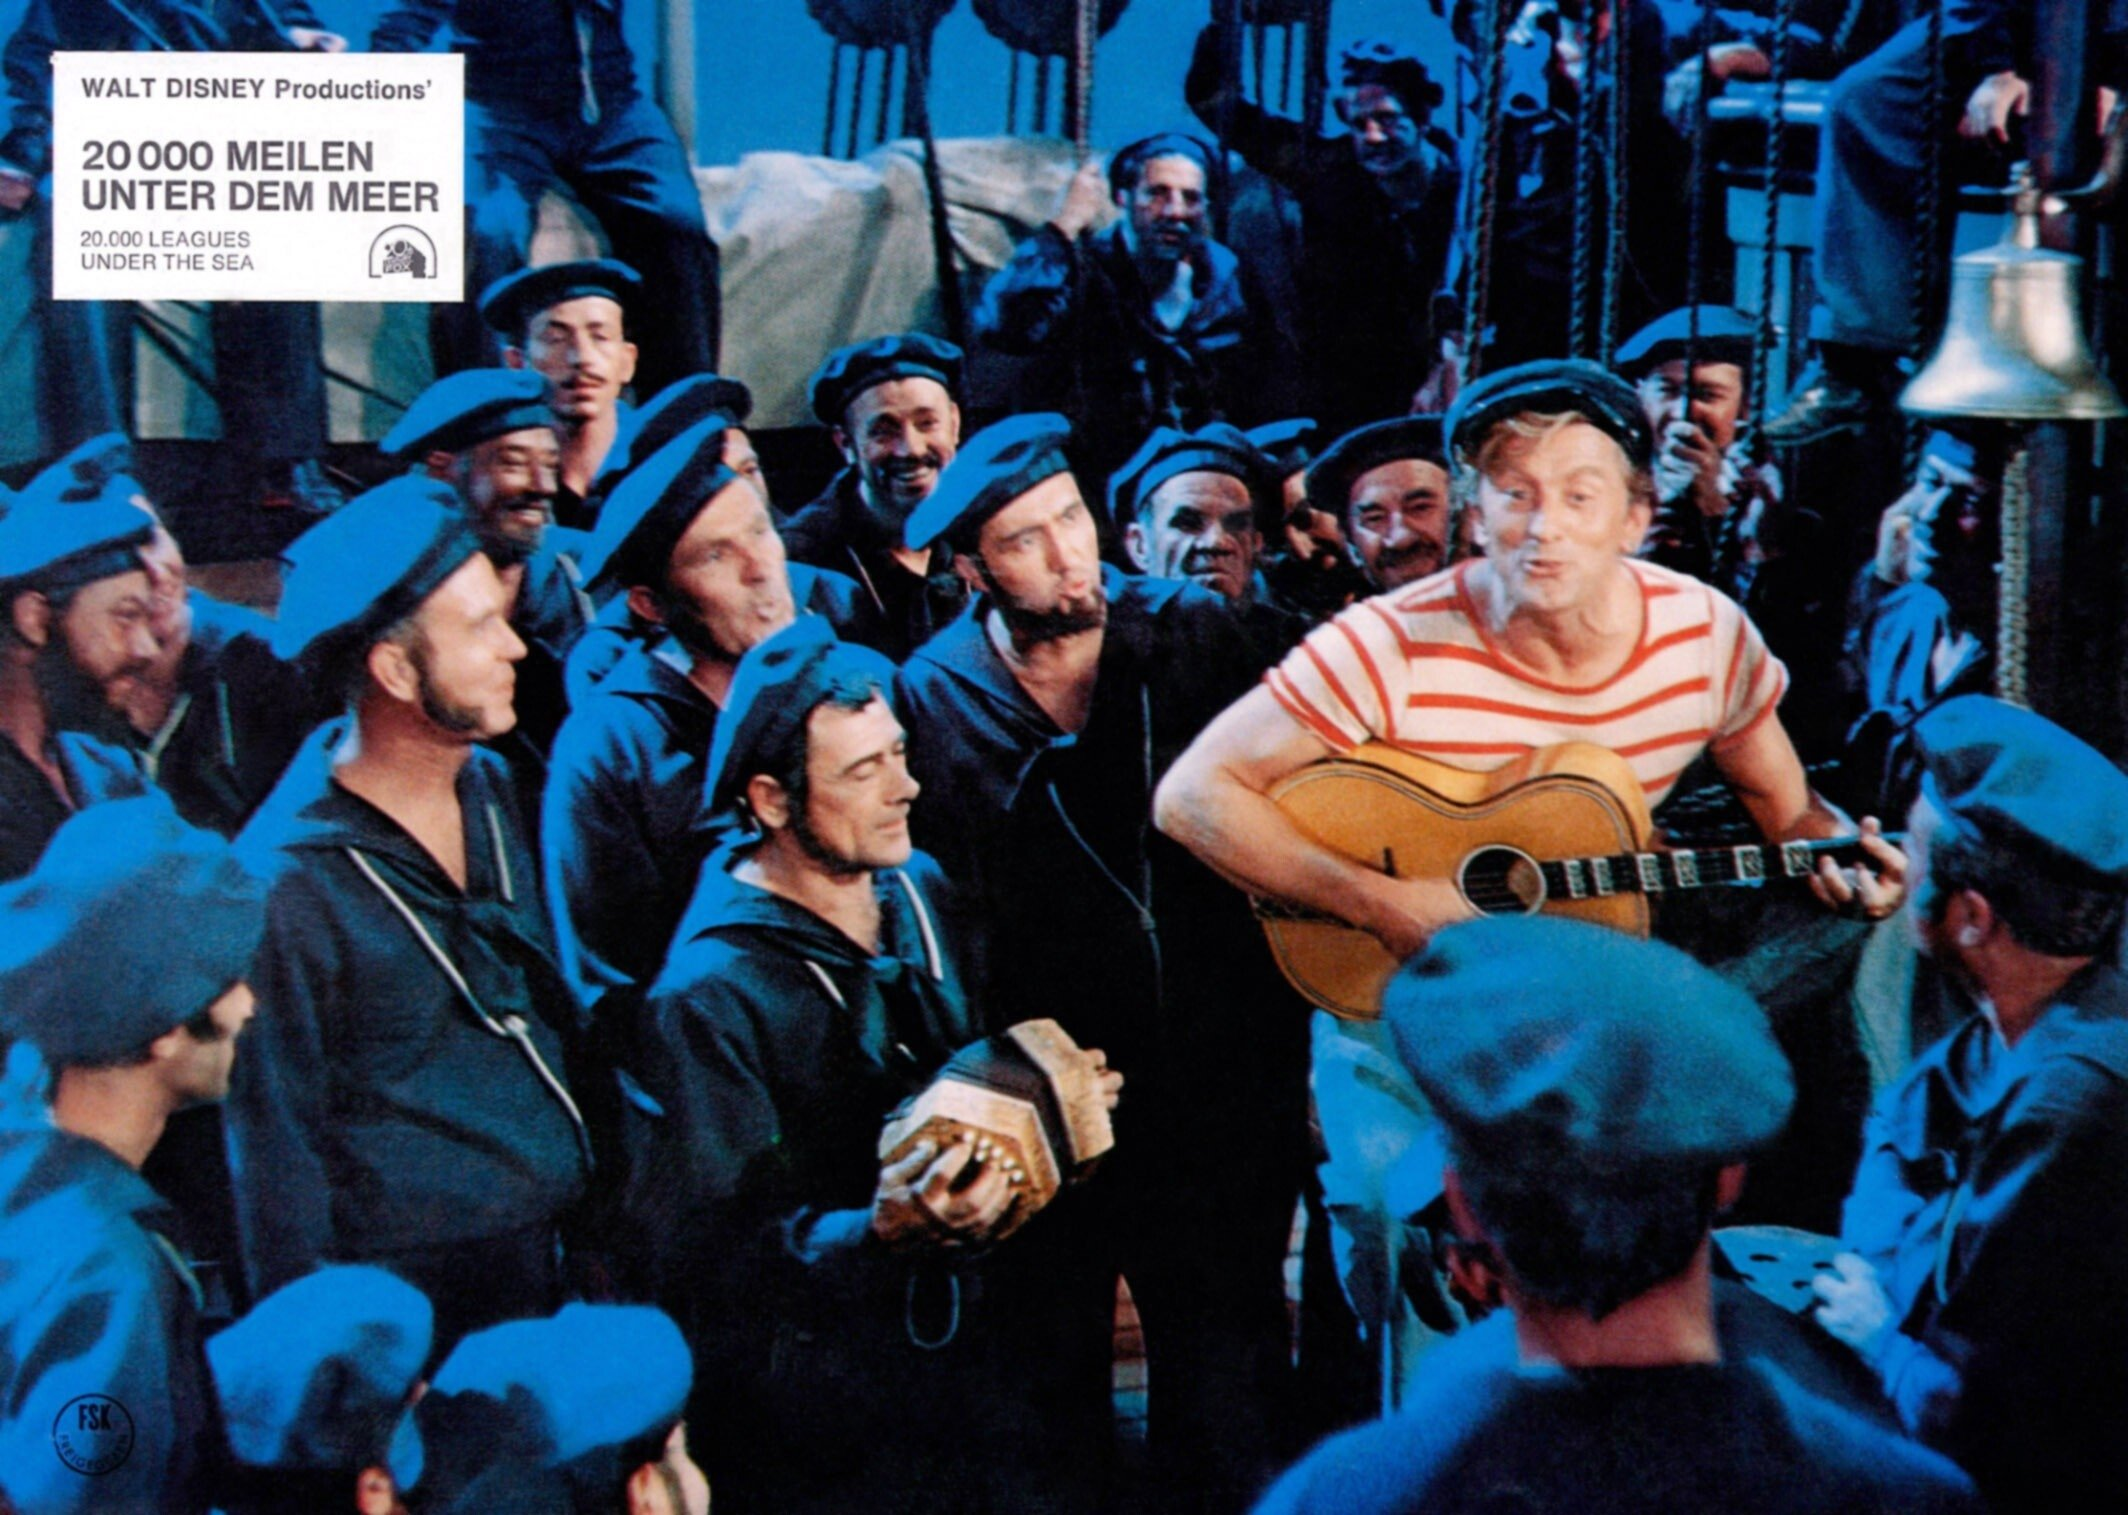 Kirk Douglas in a scene from '20,000 Leagues Under The Sea.' (Getty Images)